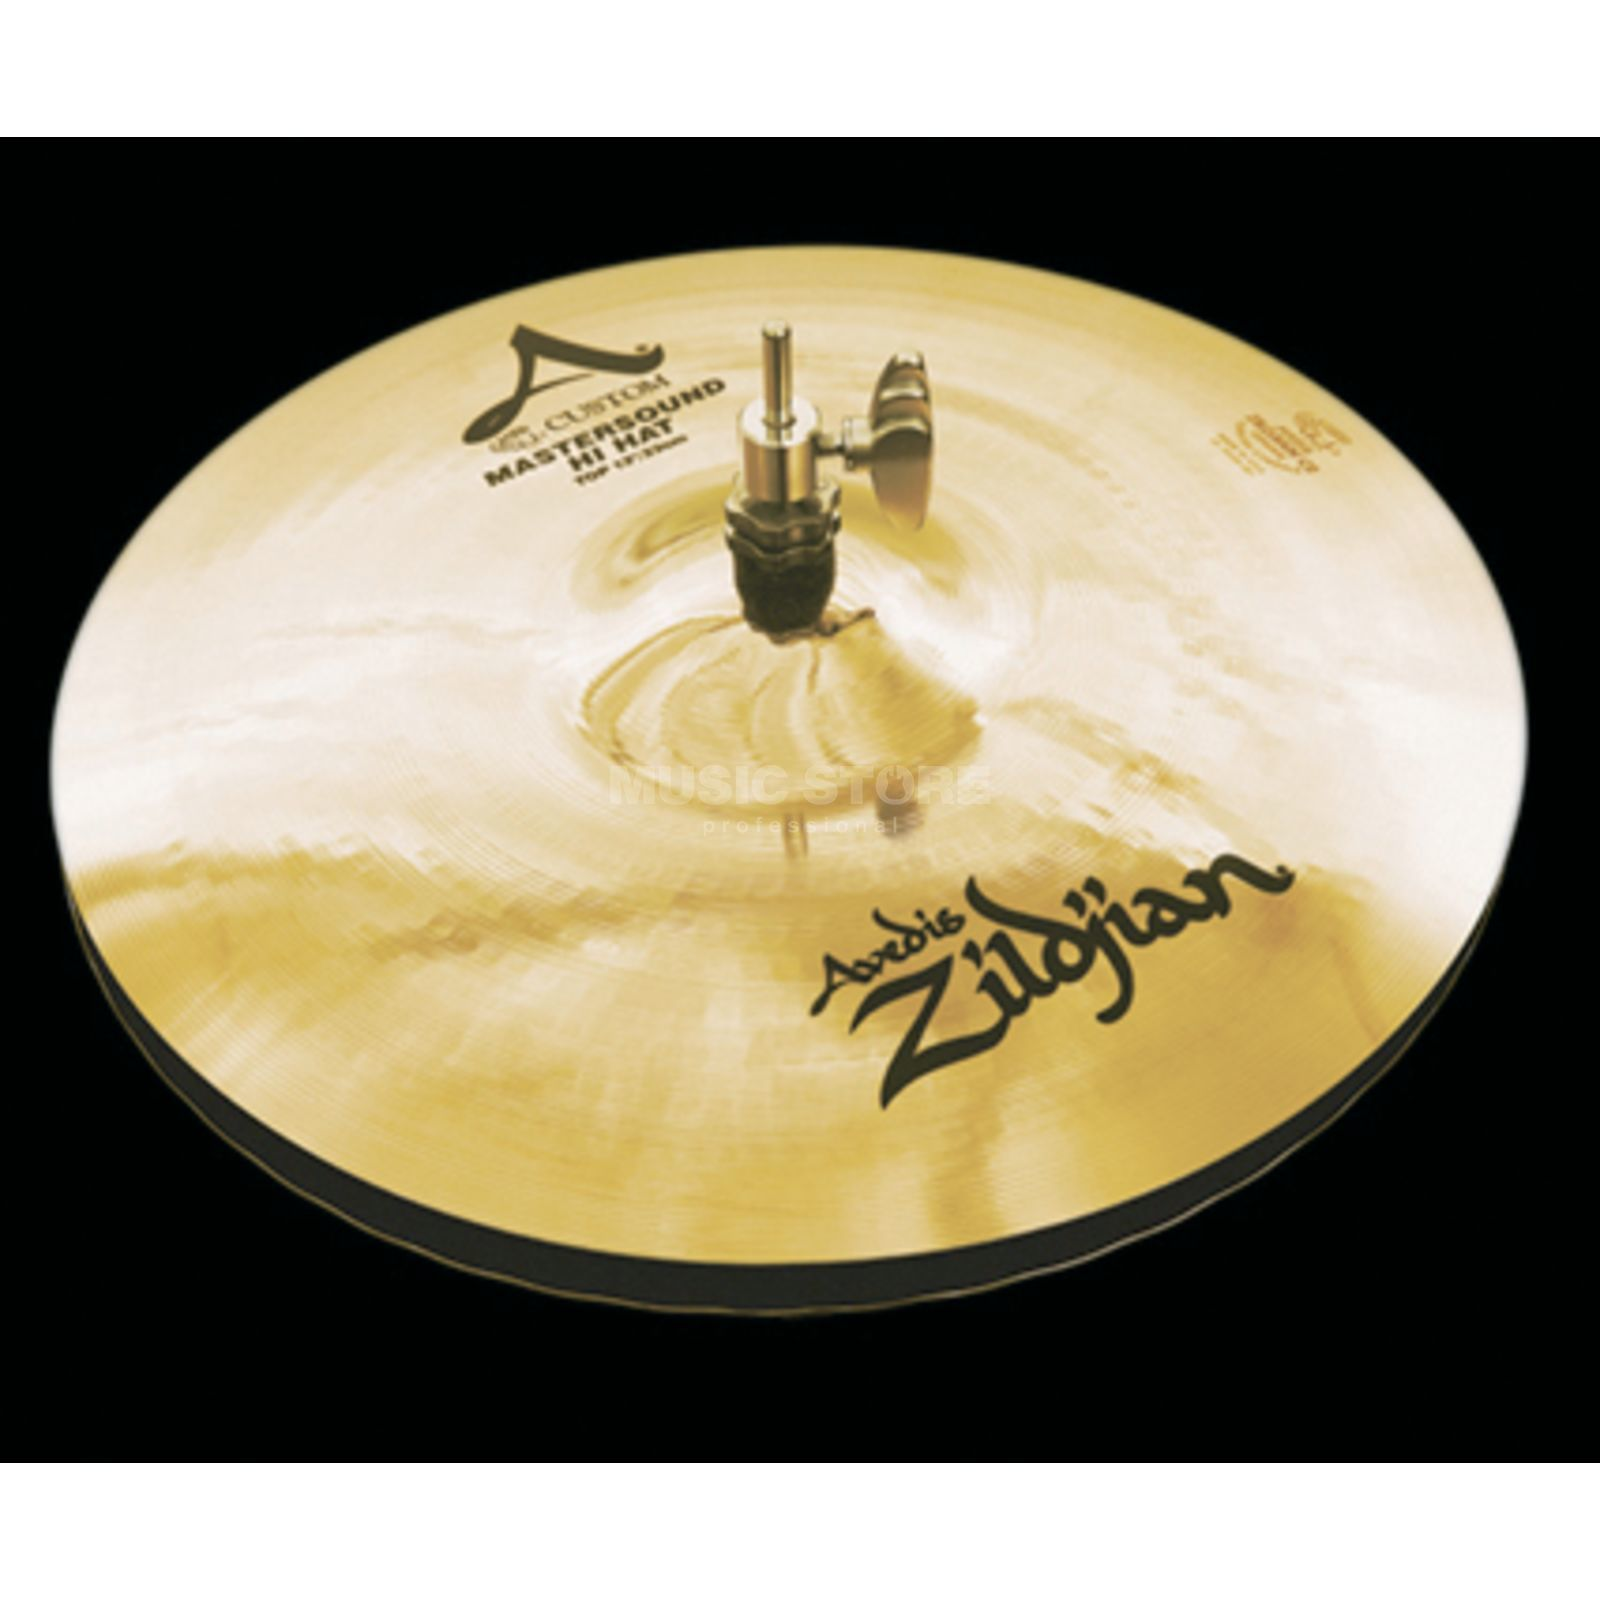 "Zildjian A-Custom Mastersound HiHat 13"" Brilliant Finish Produktbillede"